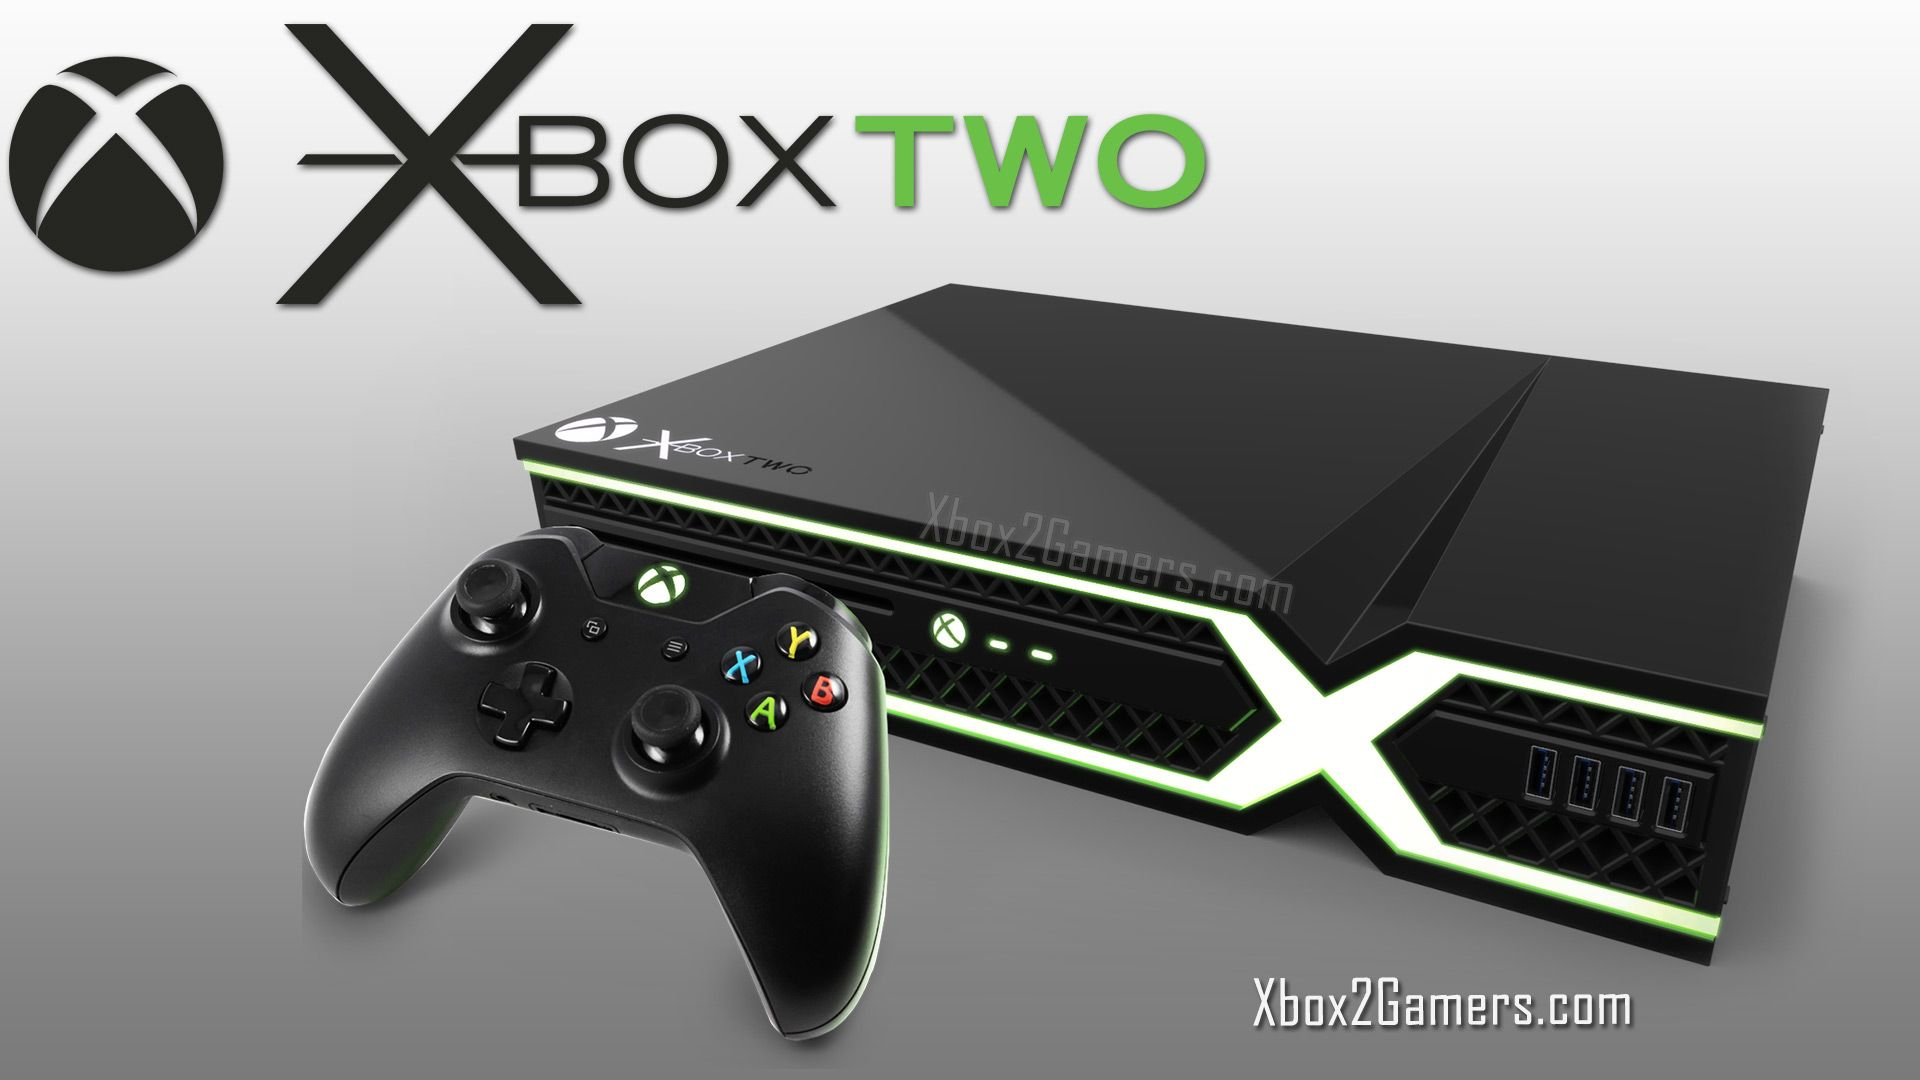 The Xbox 2 in black. Beautiful Xbox design.